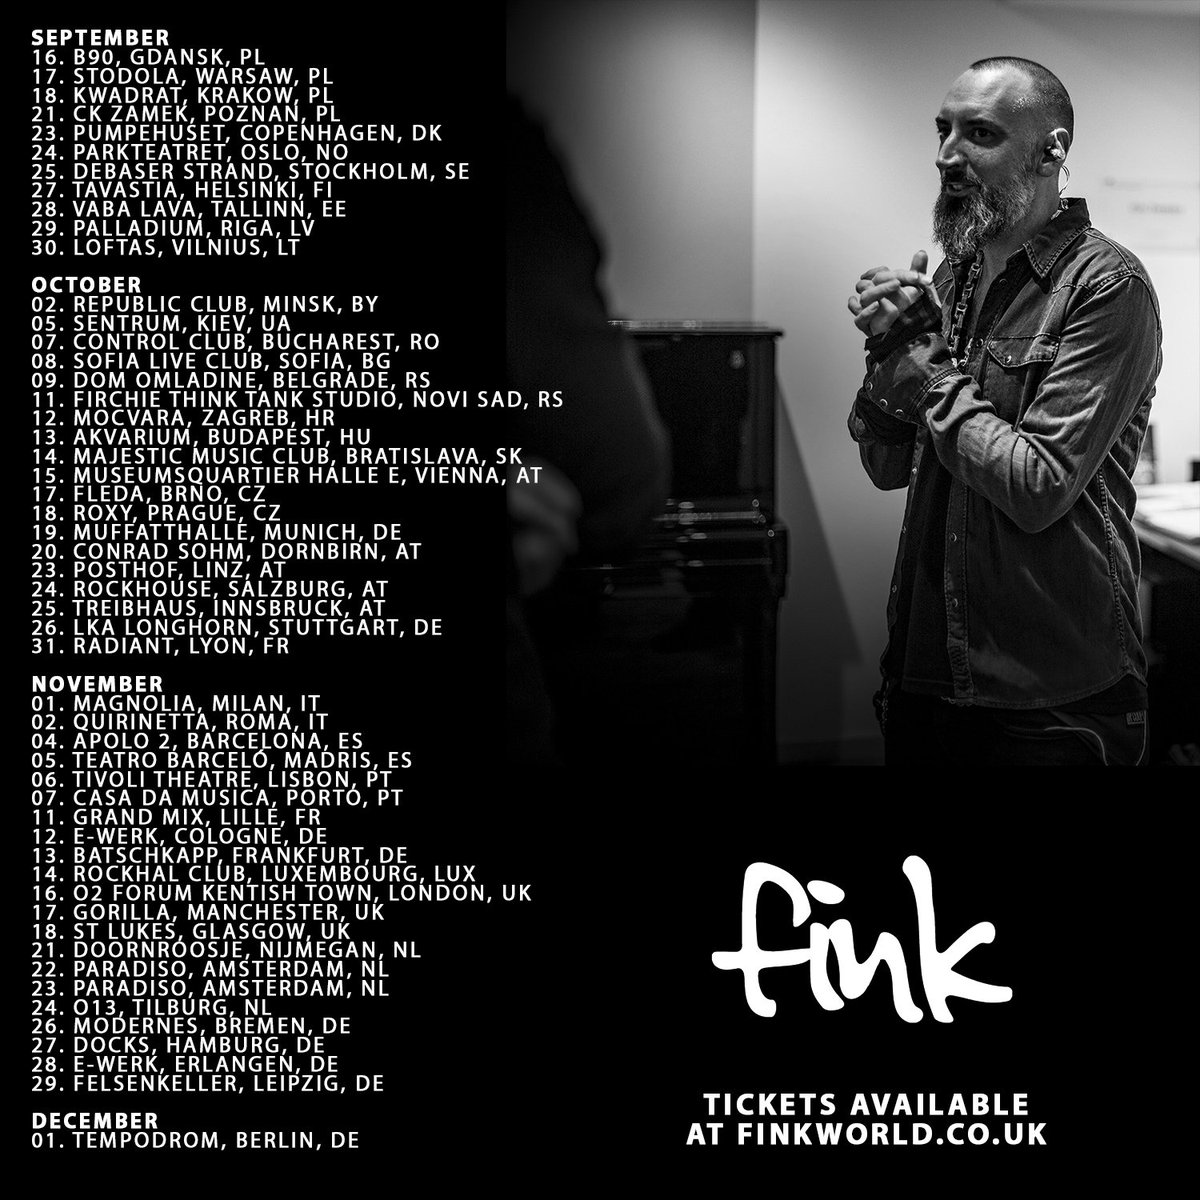 Pre-sale tickets for Fink's UK and European tour now available: https://t.co/RMwAH9ZKu1 https://t.co/PnnyVAi0kv